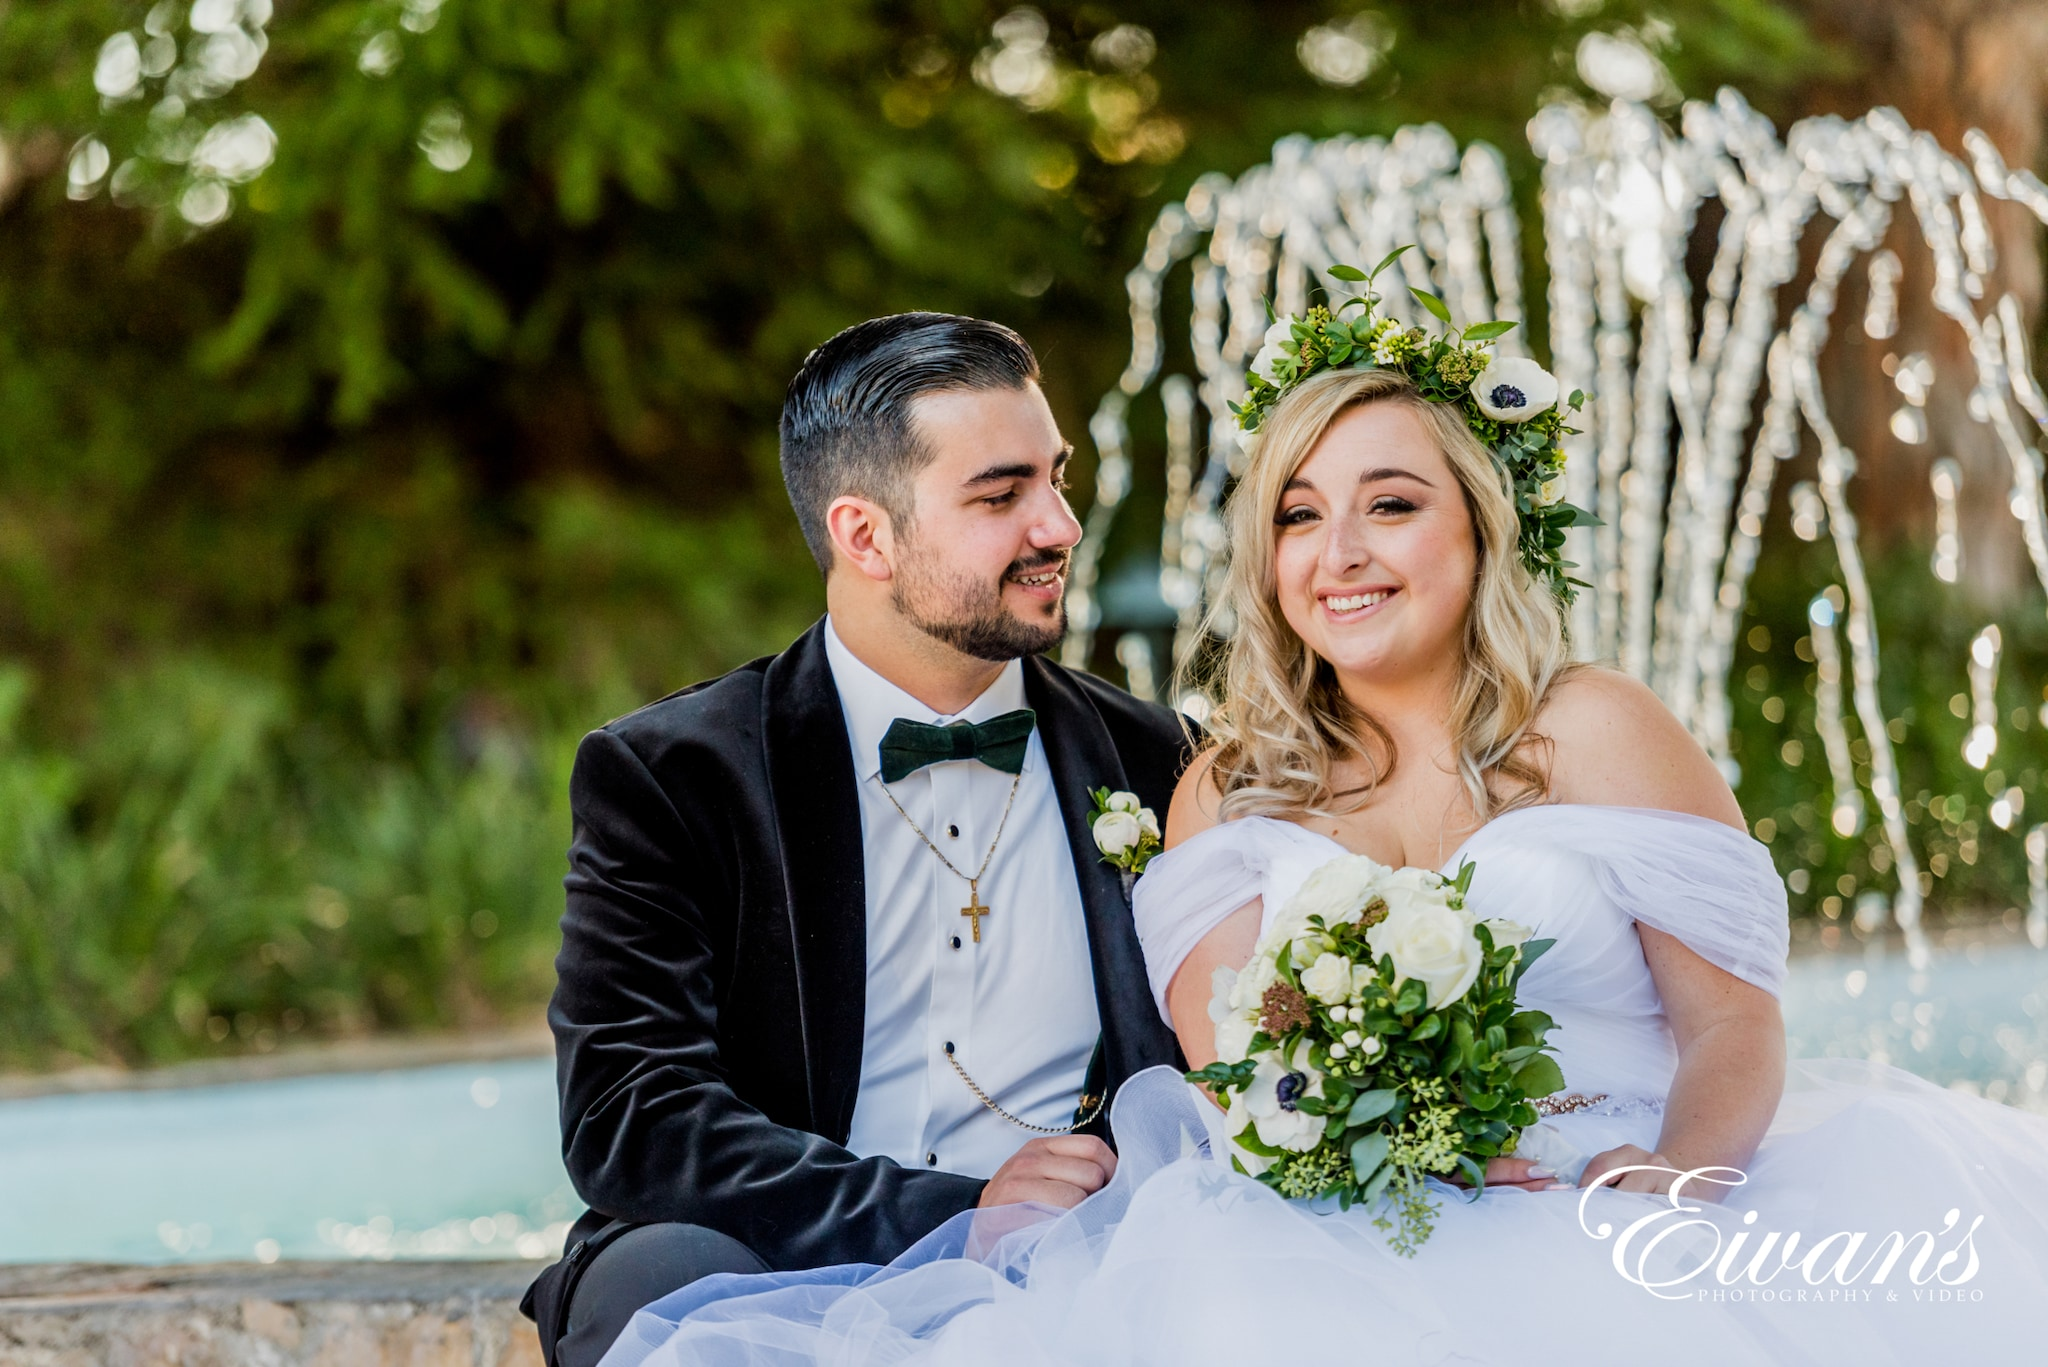 image of a bride and groom